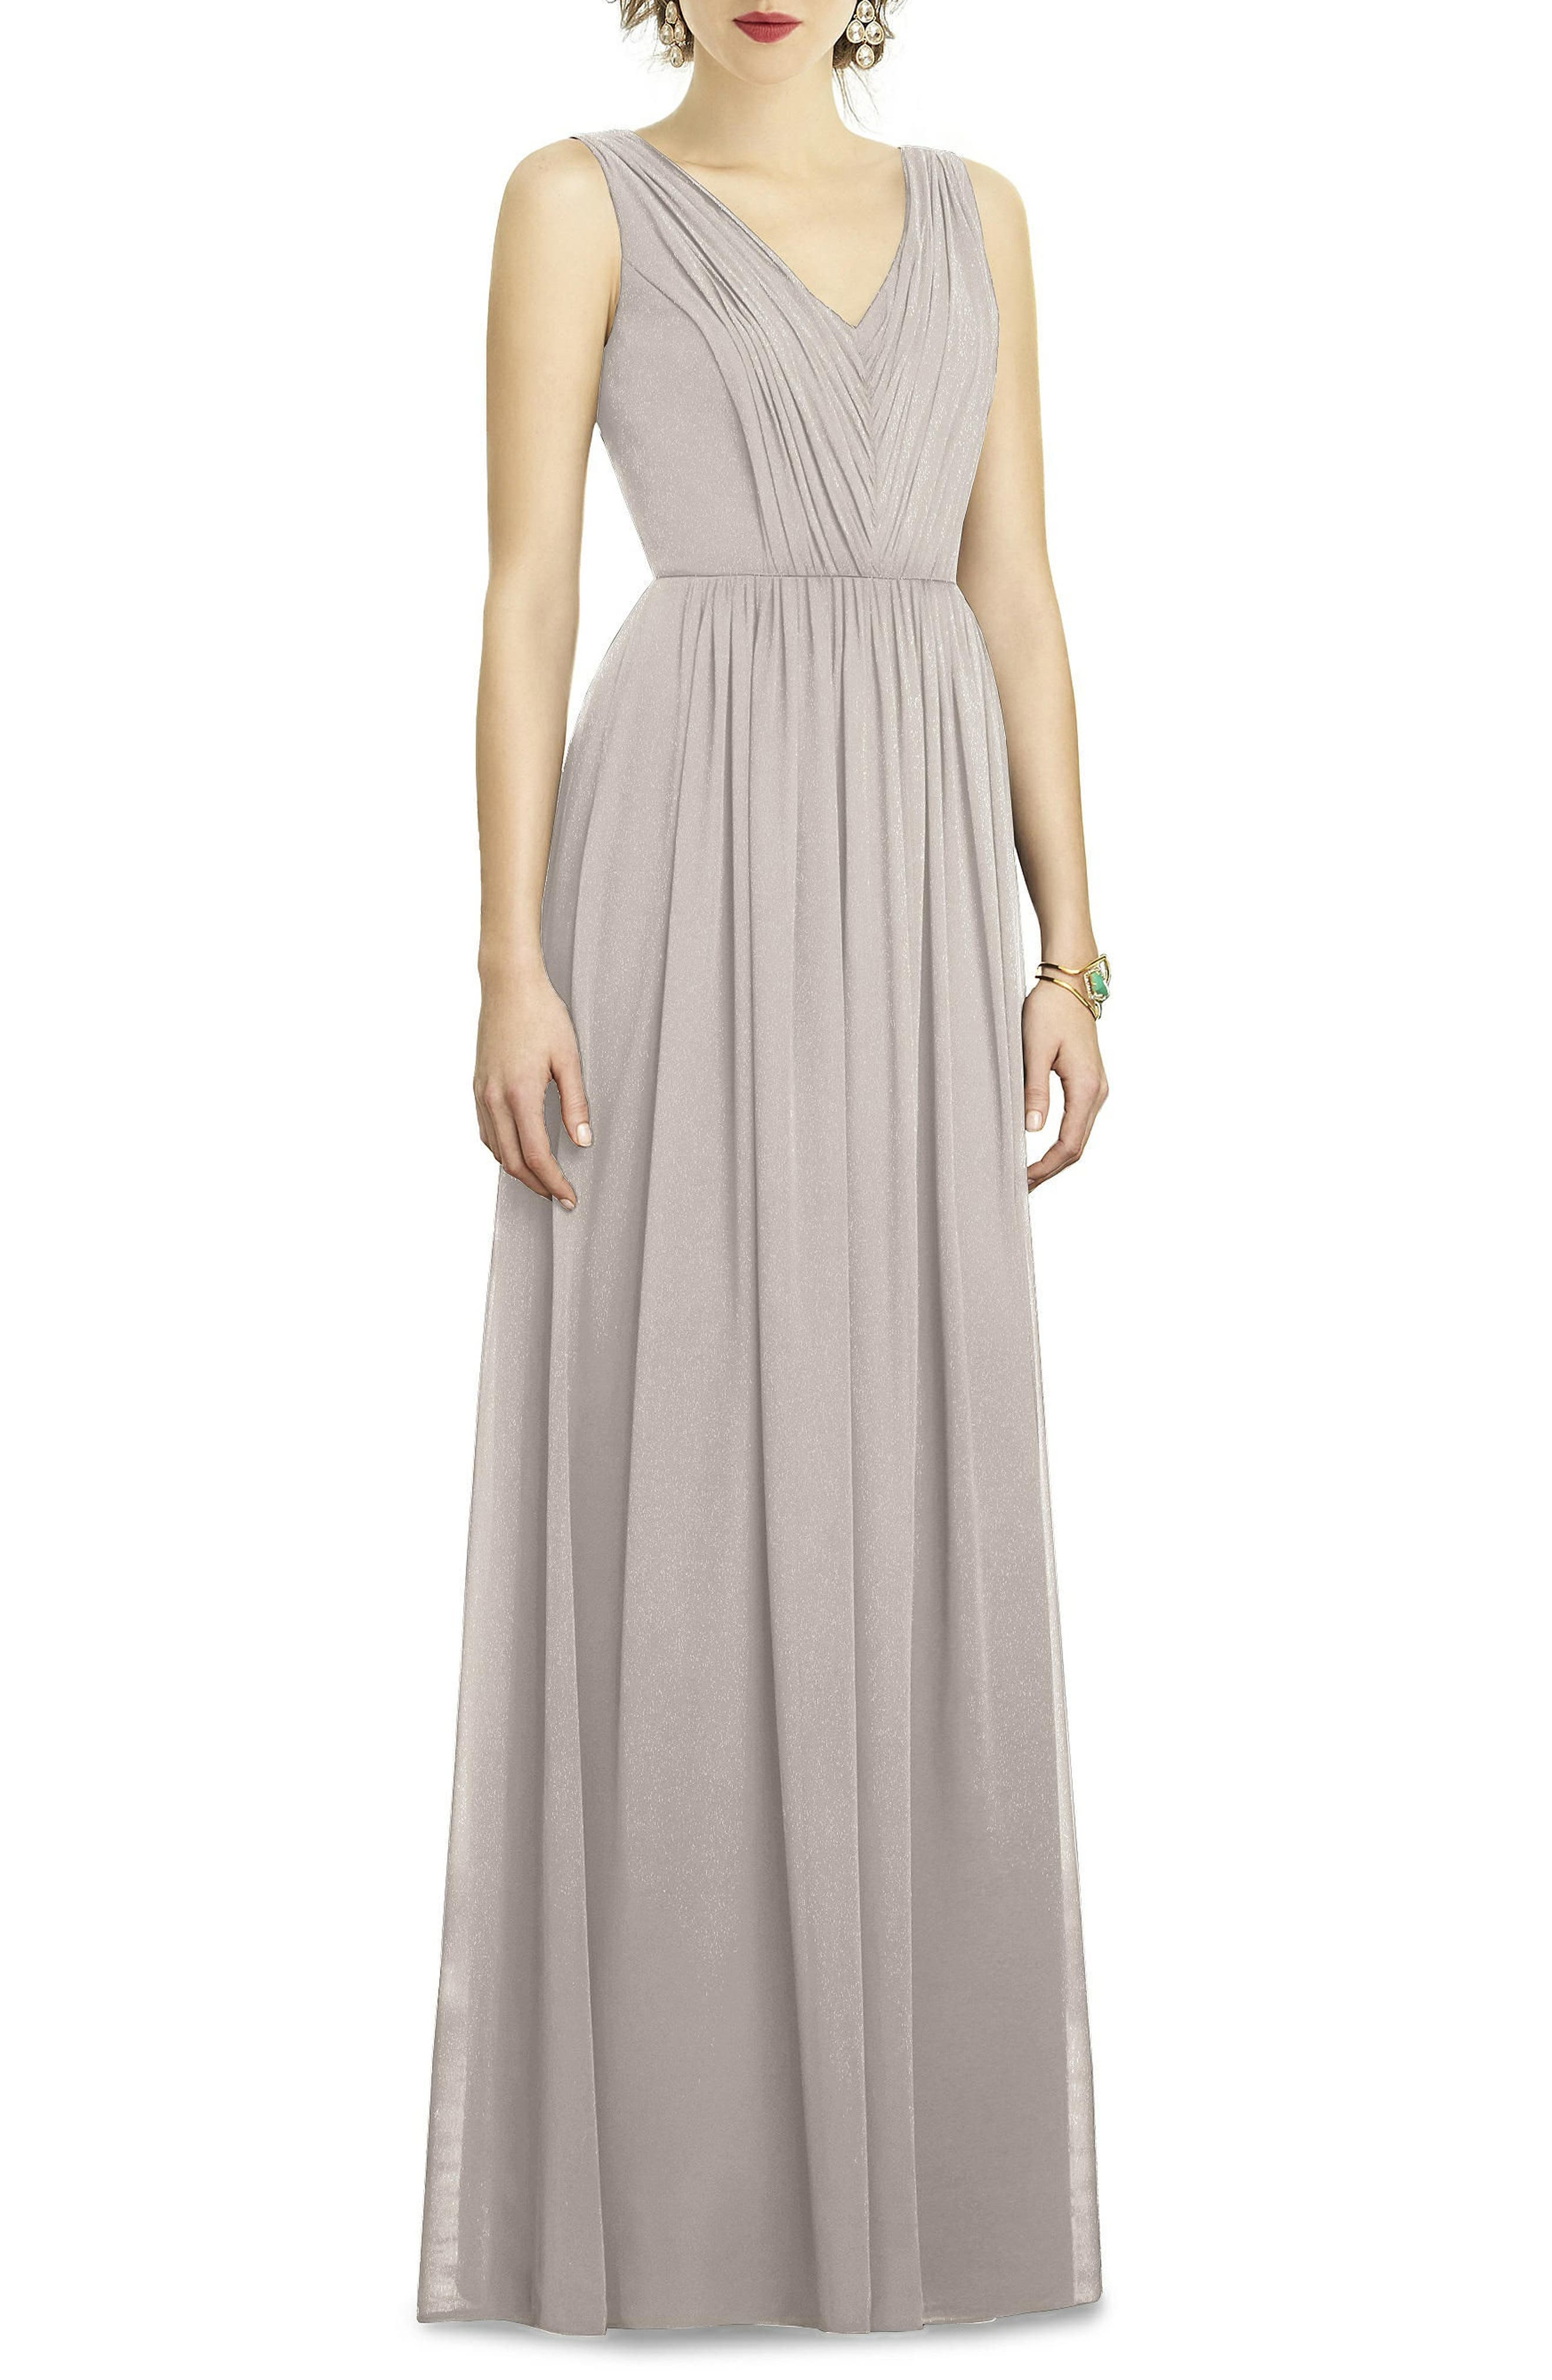 DESSY COLLECTION, Shirred Shimmer Chiffon Gown, Main thumbnail 1, color, TAUPE SILVER